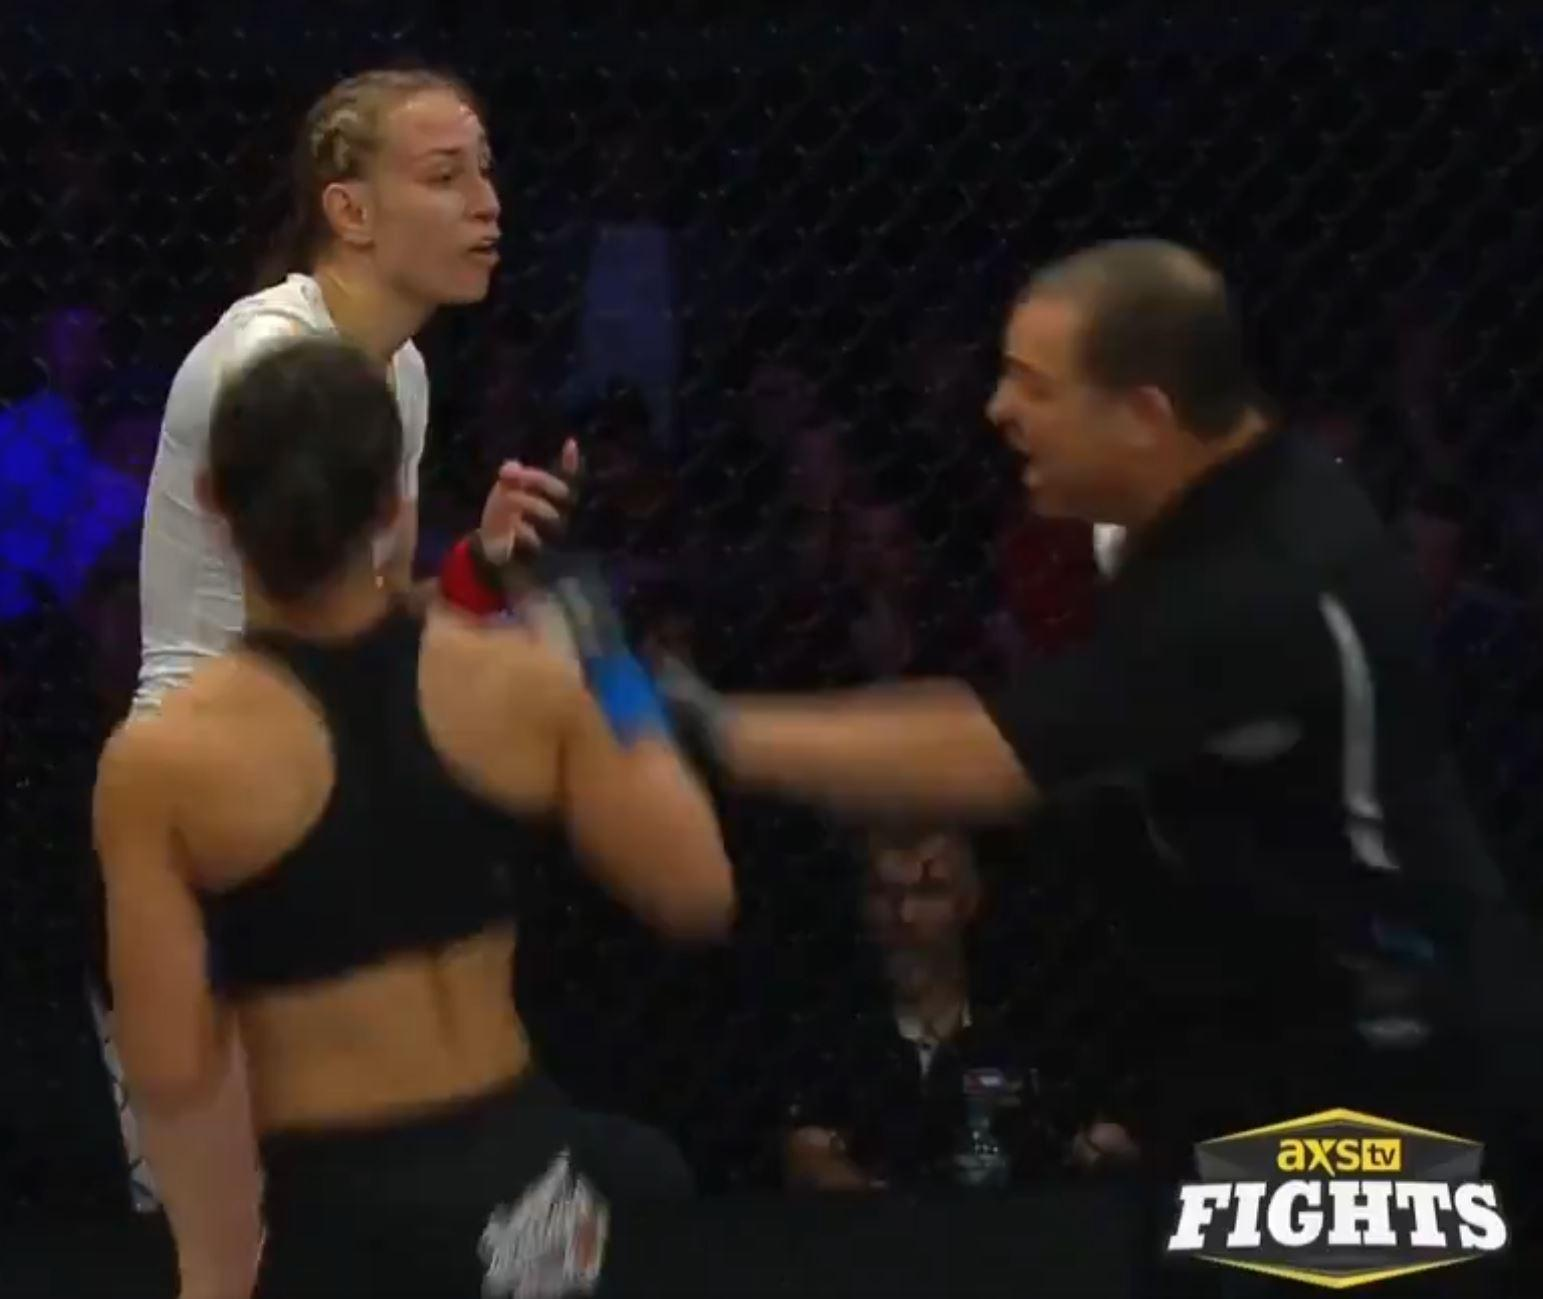 Pauline Macias came in for another attack after the ref waved away the protests